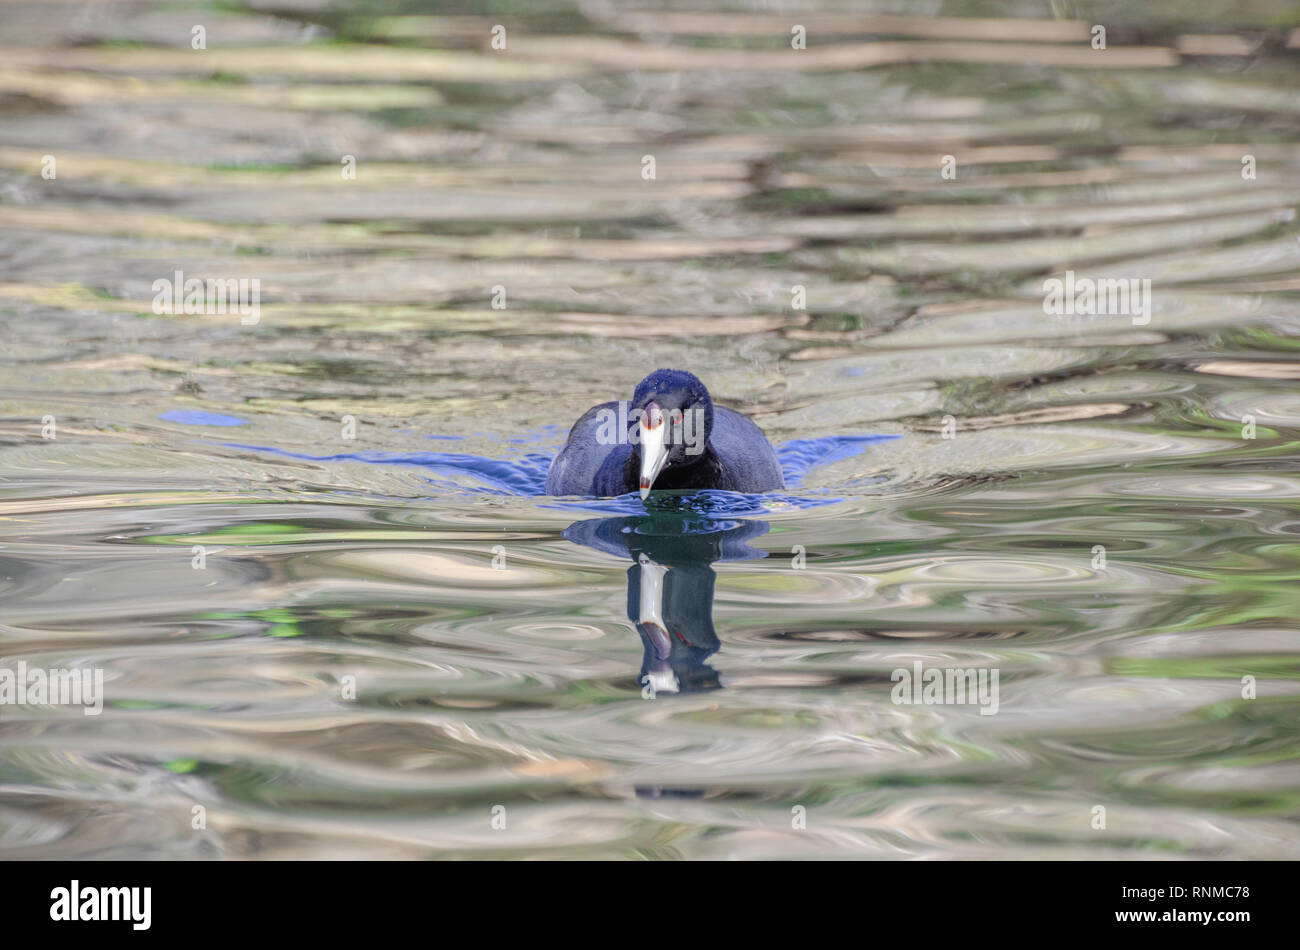 American Coot (Fulica americana), Franklin Canyon, Los Angeles, CA, USA. - Stock Image